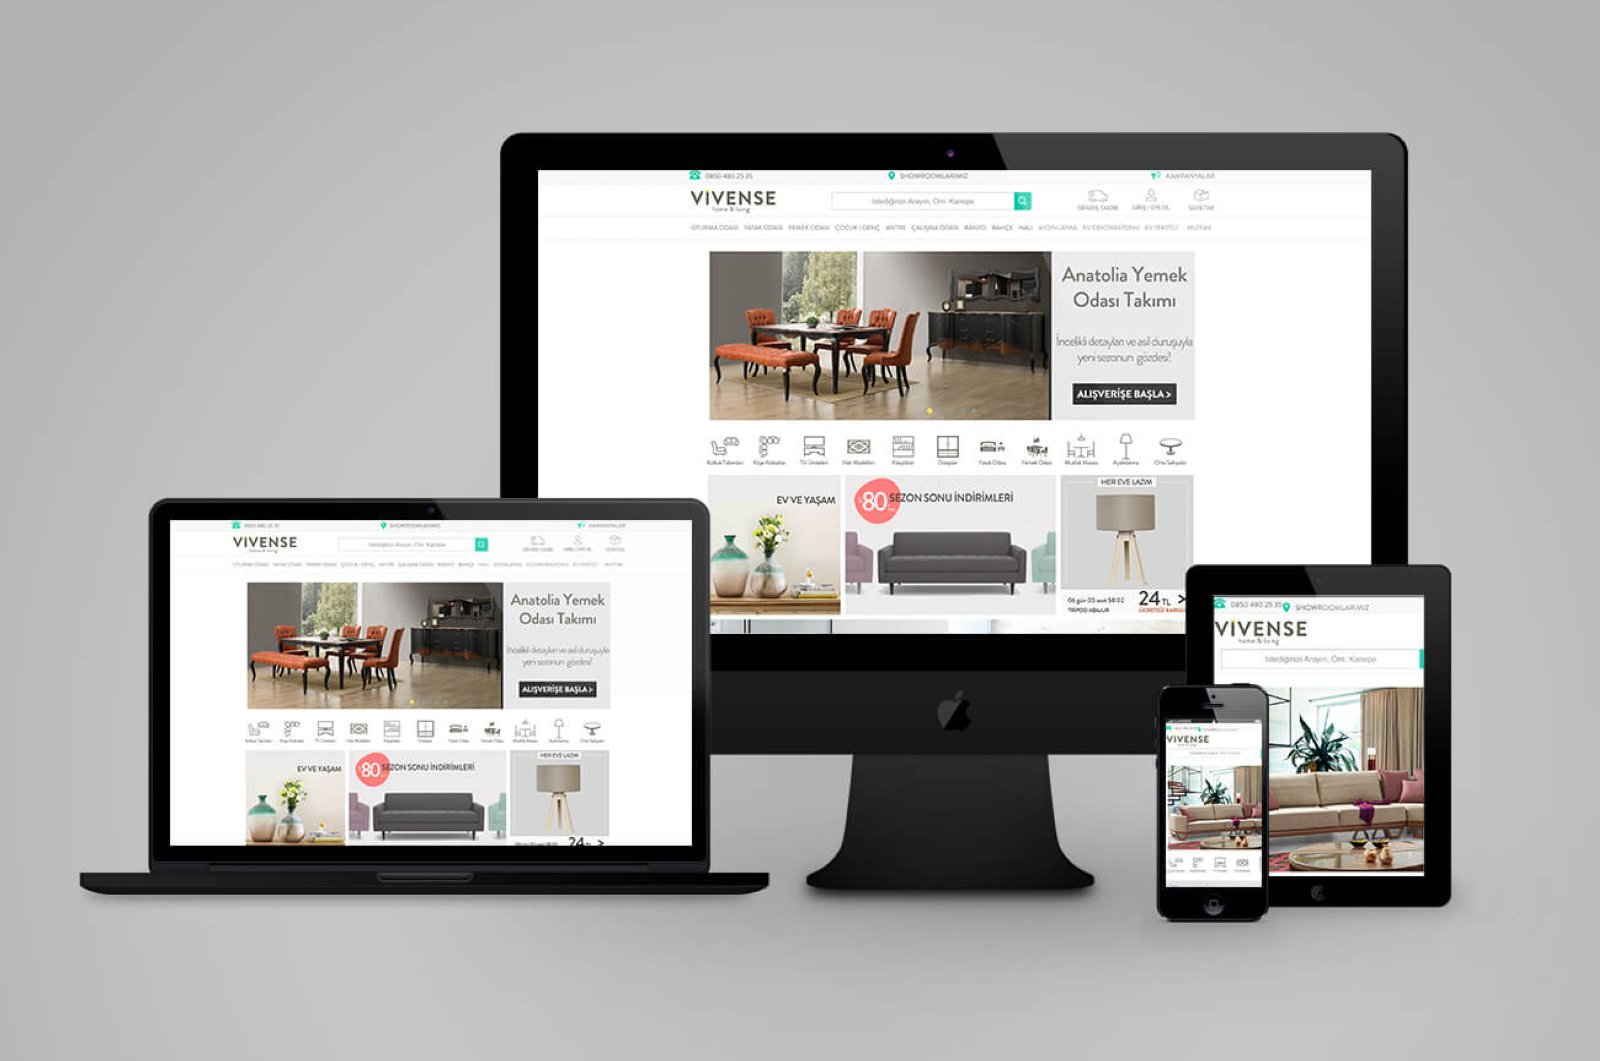 Along with the showroom set to open in London soon, Vivense's e-commerce site will start its activities across the U.K. at the beginning of 2021.